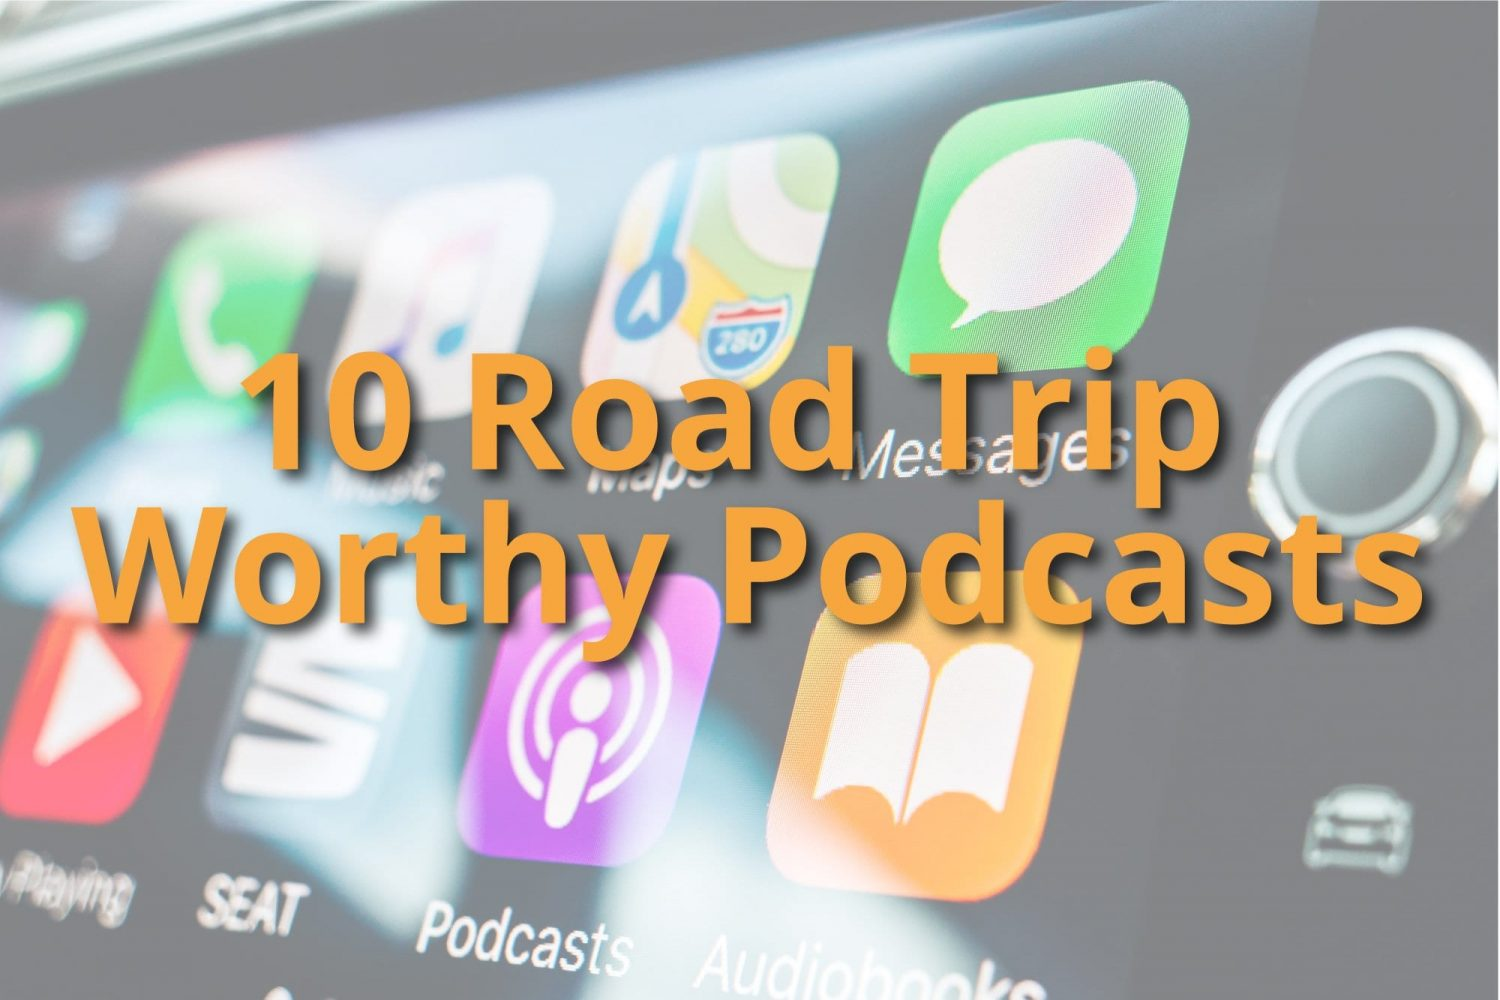 10 Road Trip Worthy Podcasts